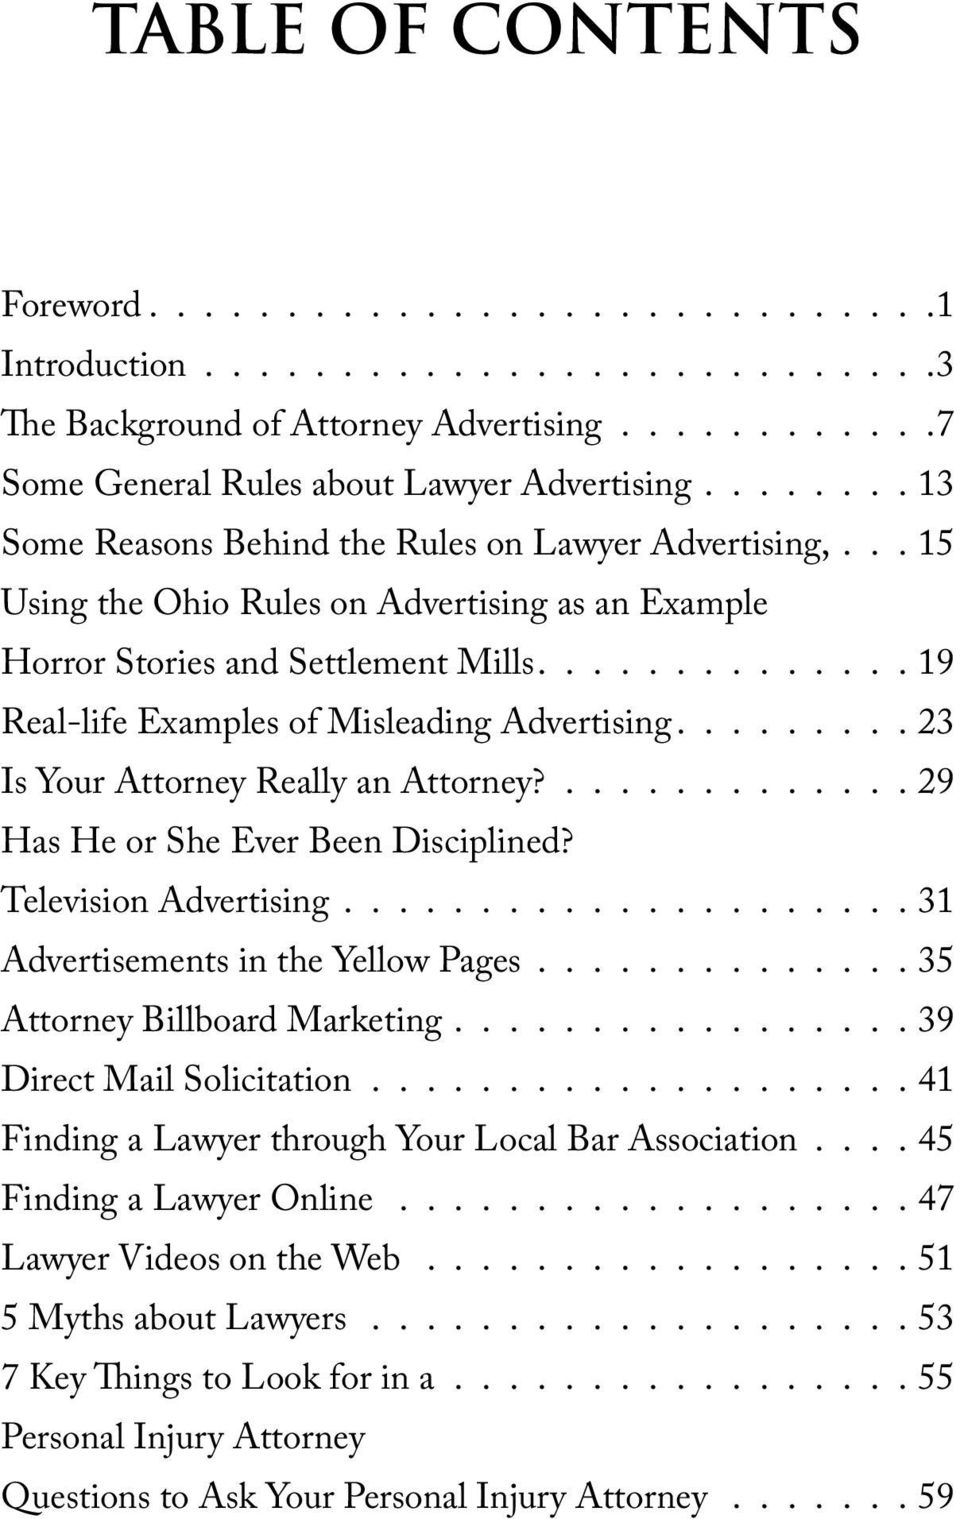 ............. 19 Real-life Examples of Misleading Advertising......... 23 Is Your Attorney Really an Attorney?............. 29 Has He or She Ever Been Disciplined? Television Advertising.